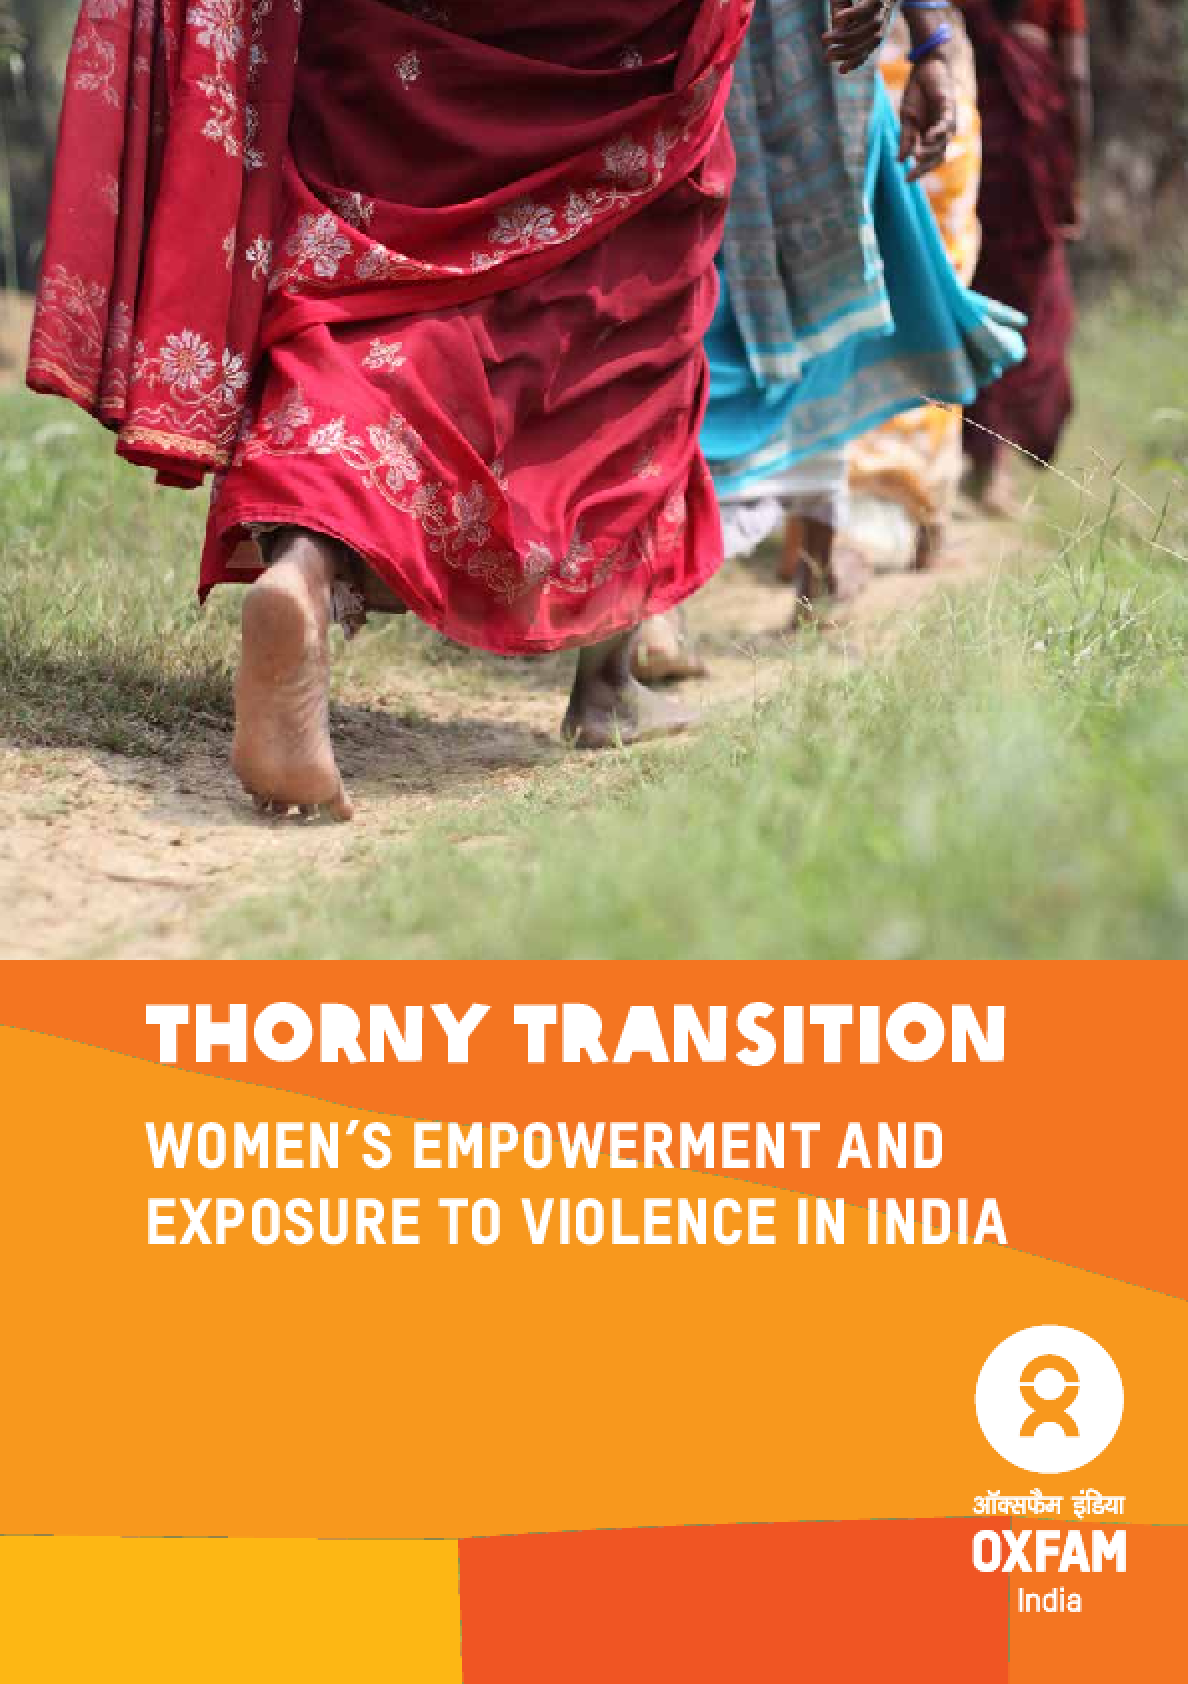 Thorny Transition: Women's empowerment and exposure to violence in India